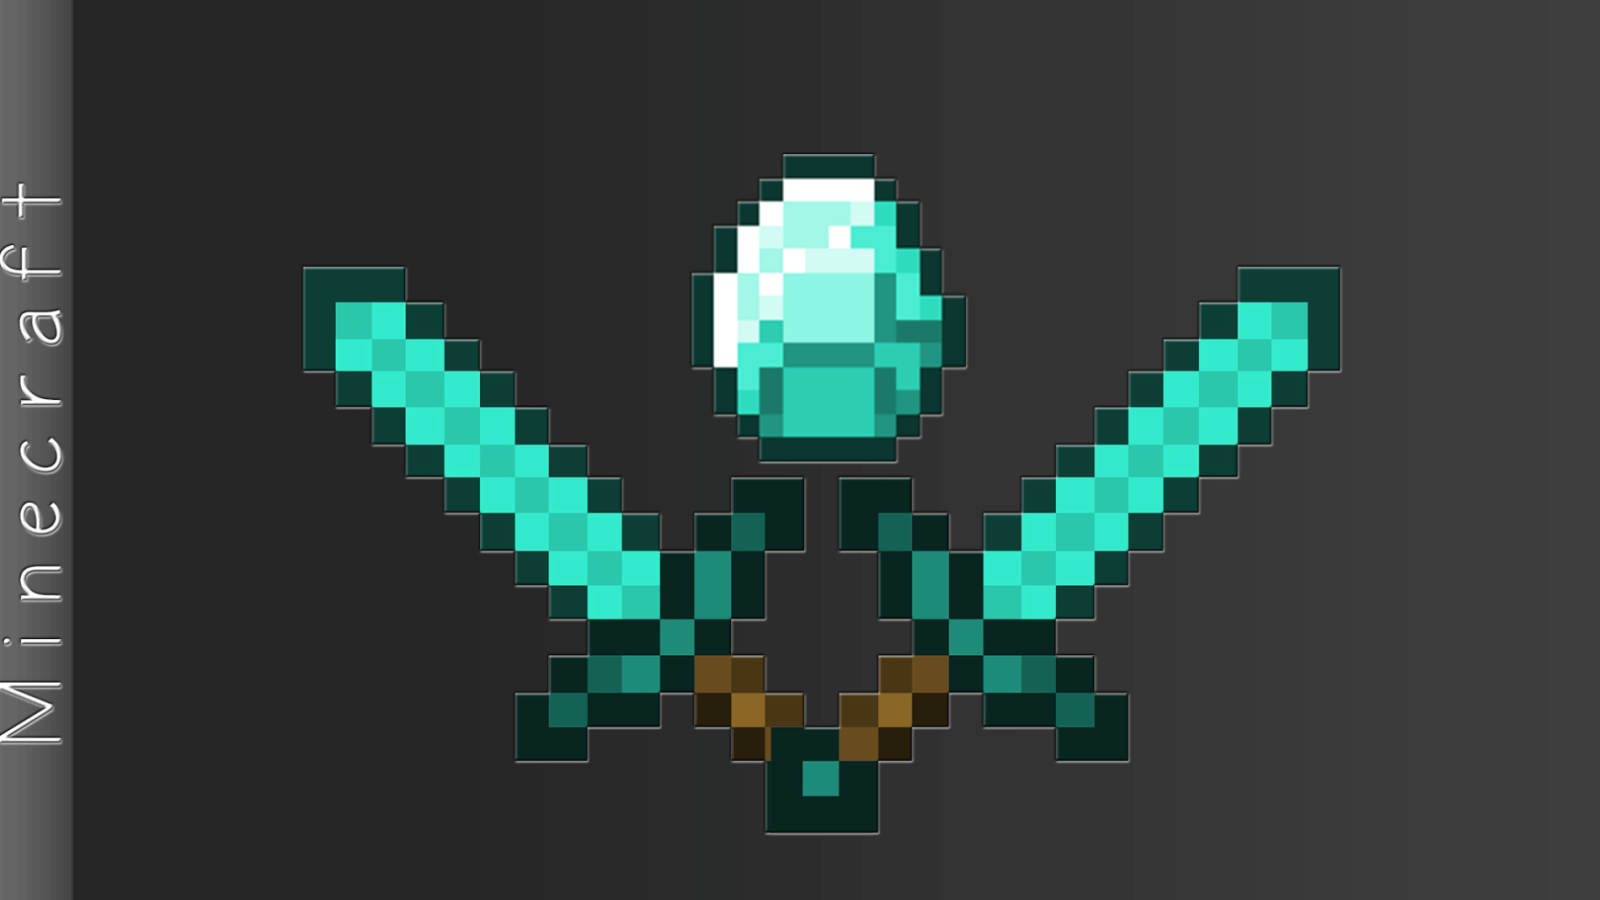 diamond-sword-duo.png - 81.7 KB